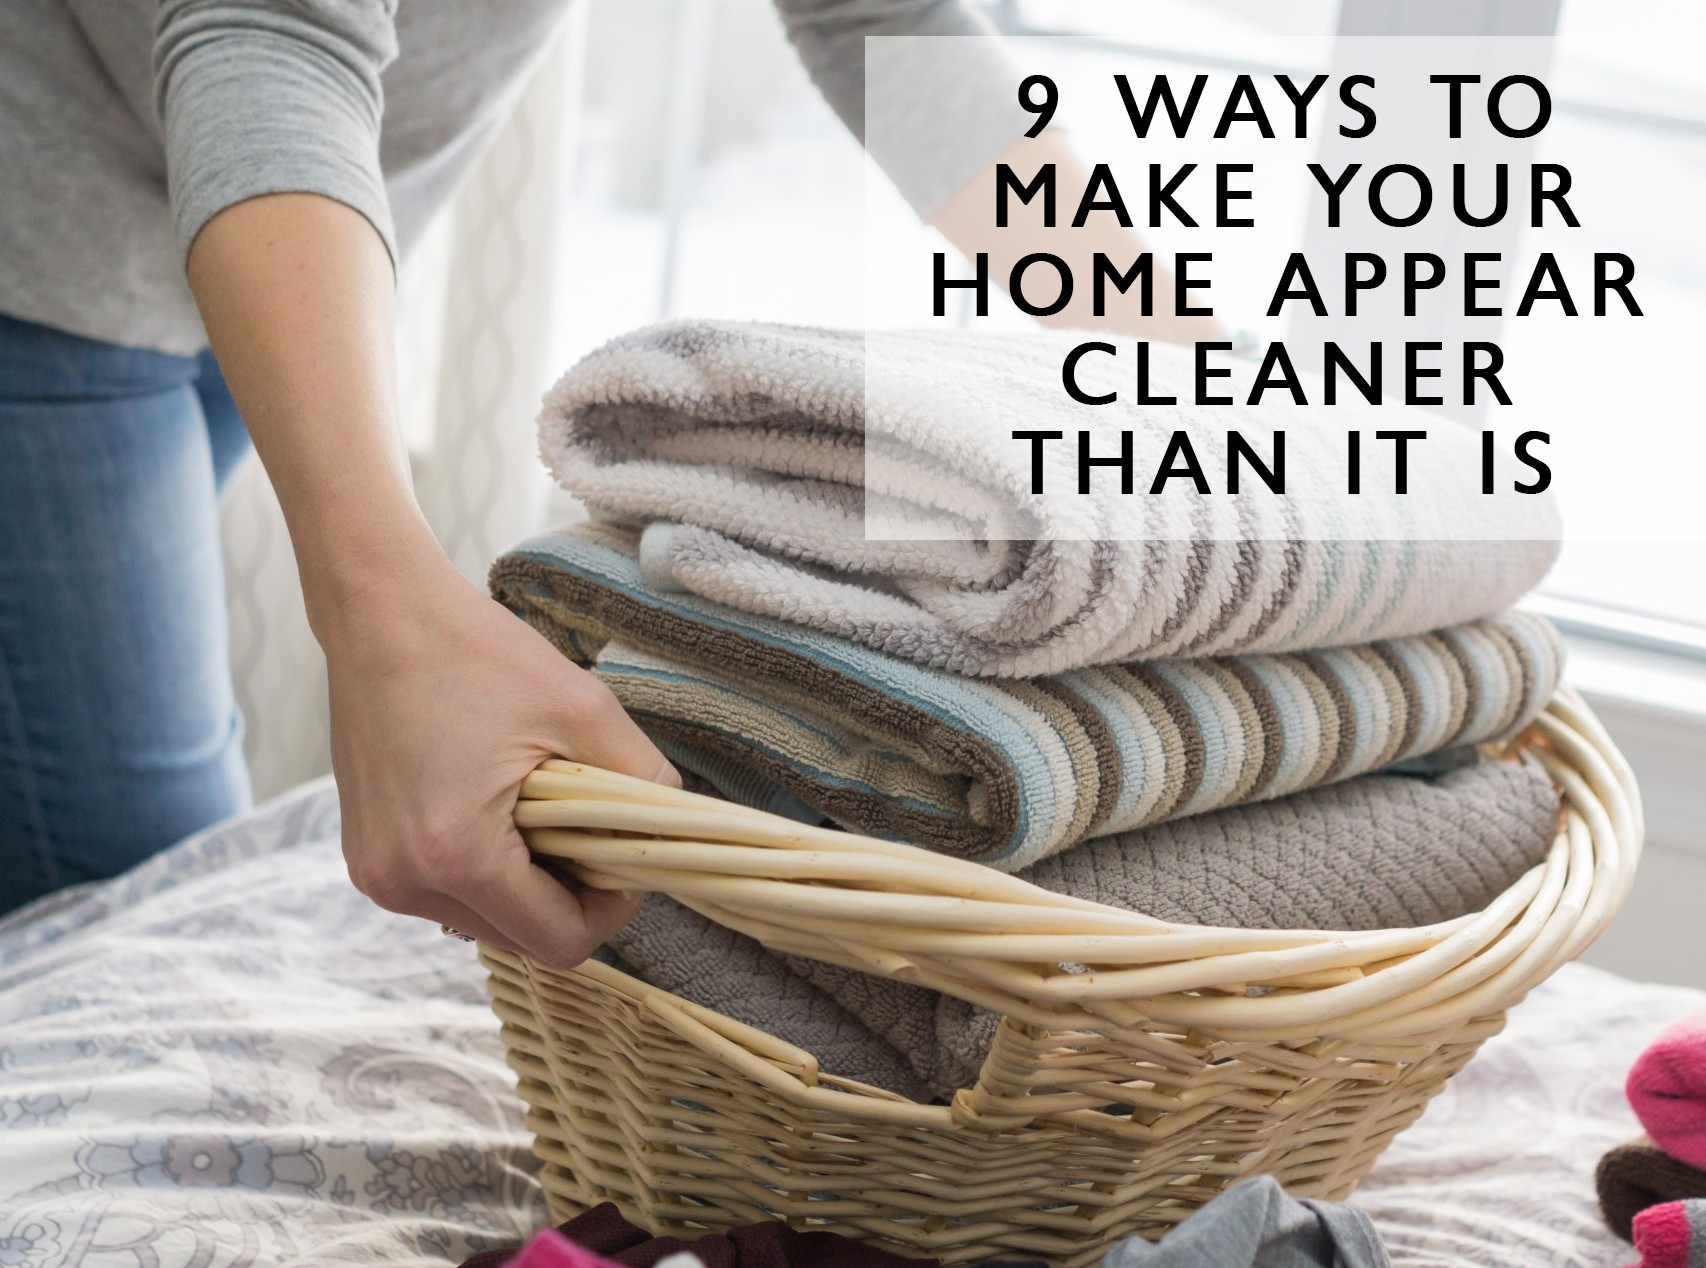 9 Ways to Make Your Home Appear Cleaner Than It Is